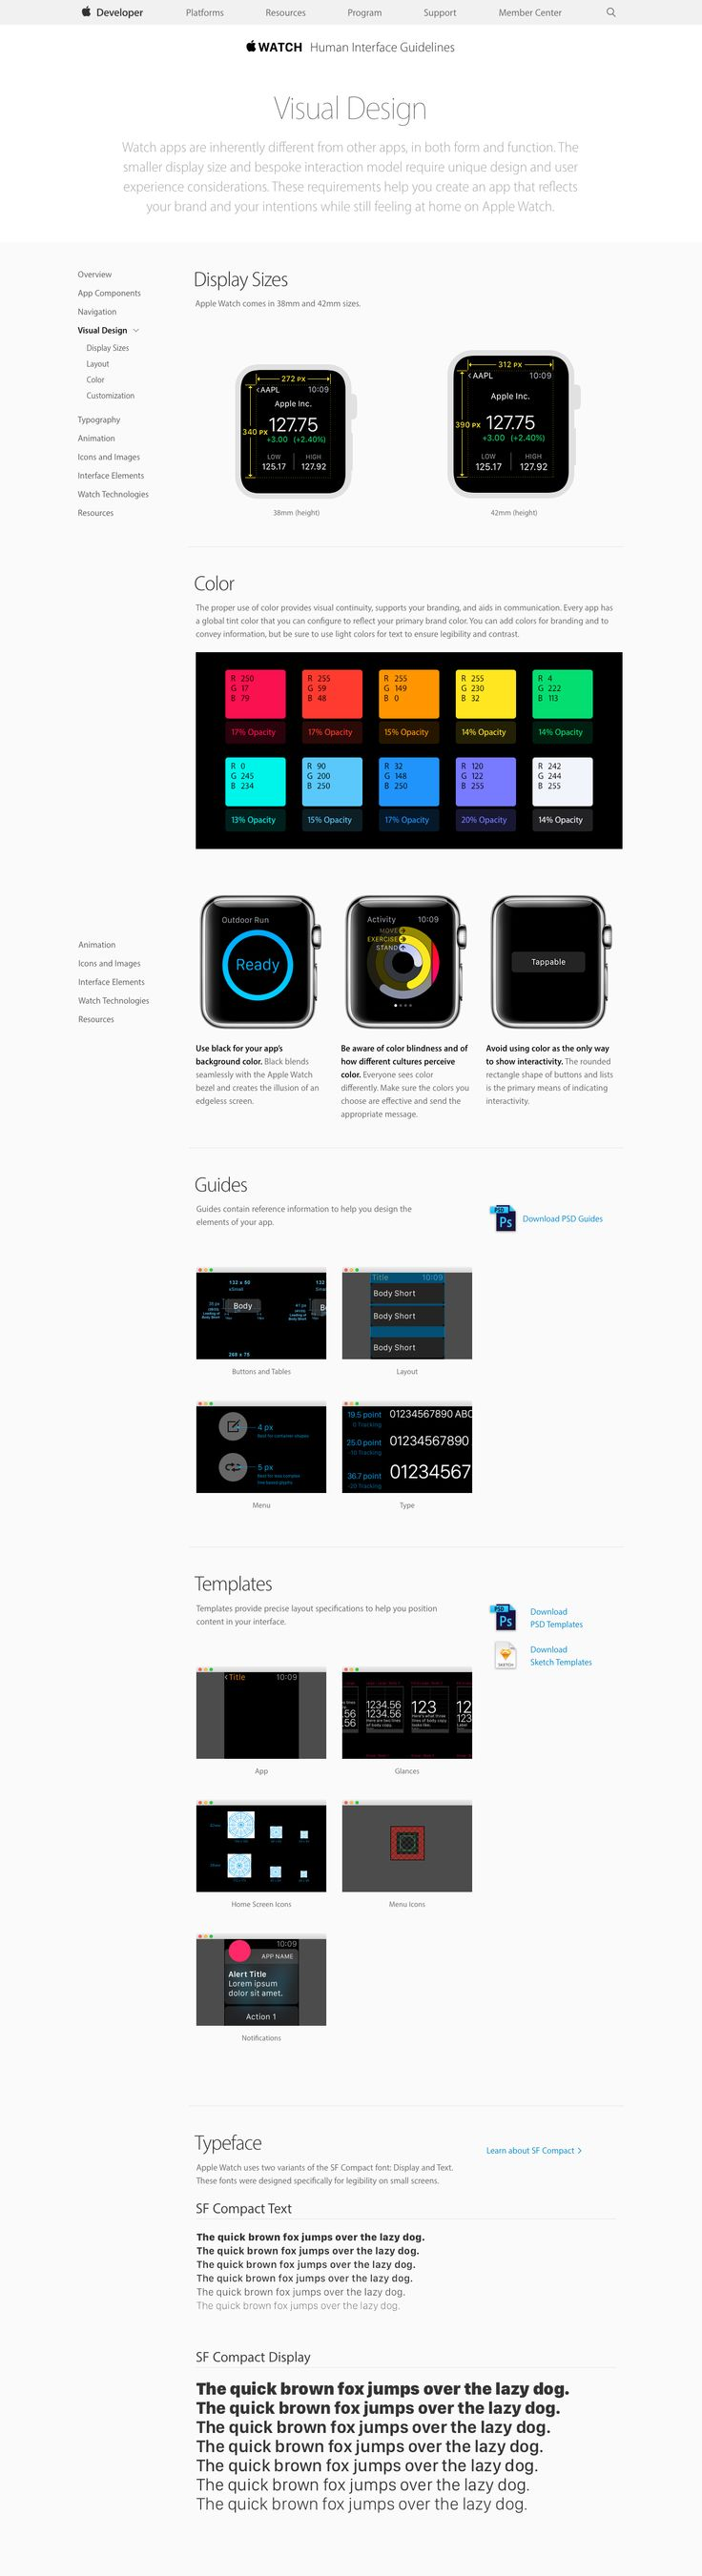 Apple Watch Human Interface Guidelines. The watch design guide is probably the most informative one from all Apple's products. The guideline includes everything you would expect: components, nav system, visual, typography, motion, icons and etc... There is even a resources section where you can download PSD templates. #designguide